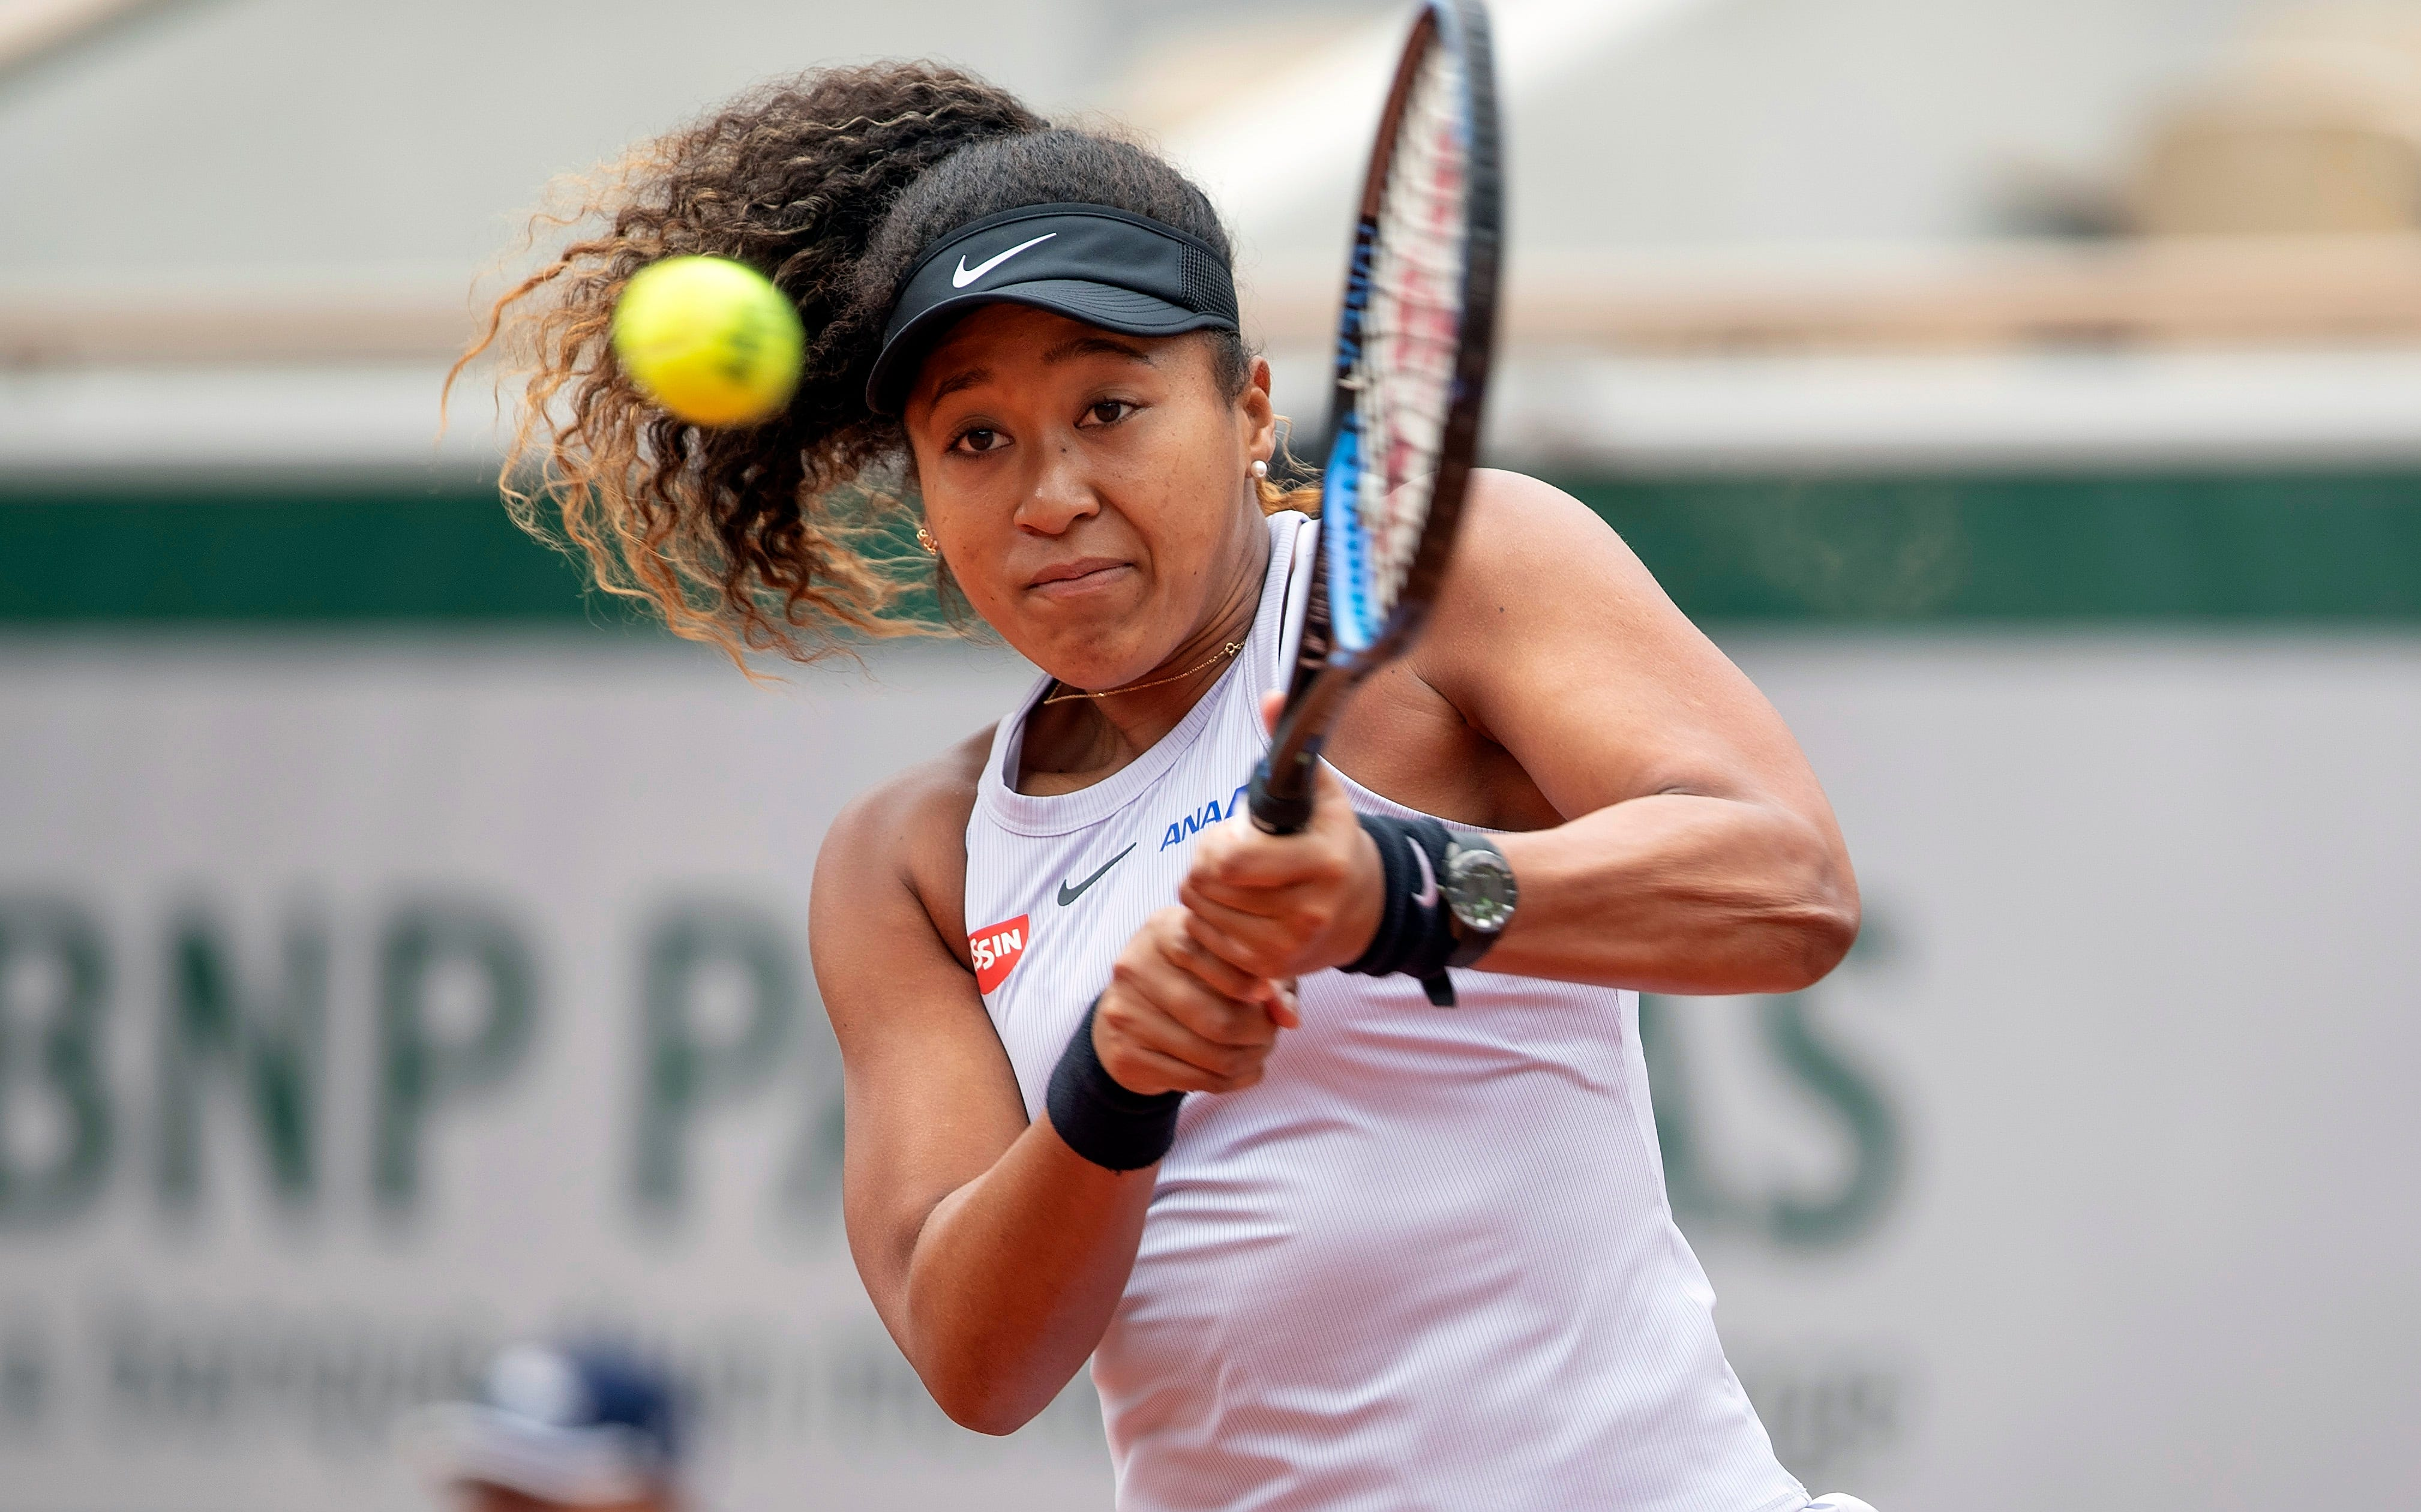 French Open fines Naomi Osaka $15,000 for not speaking at tournament, warns of further consequences